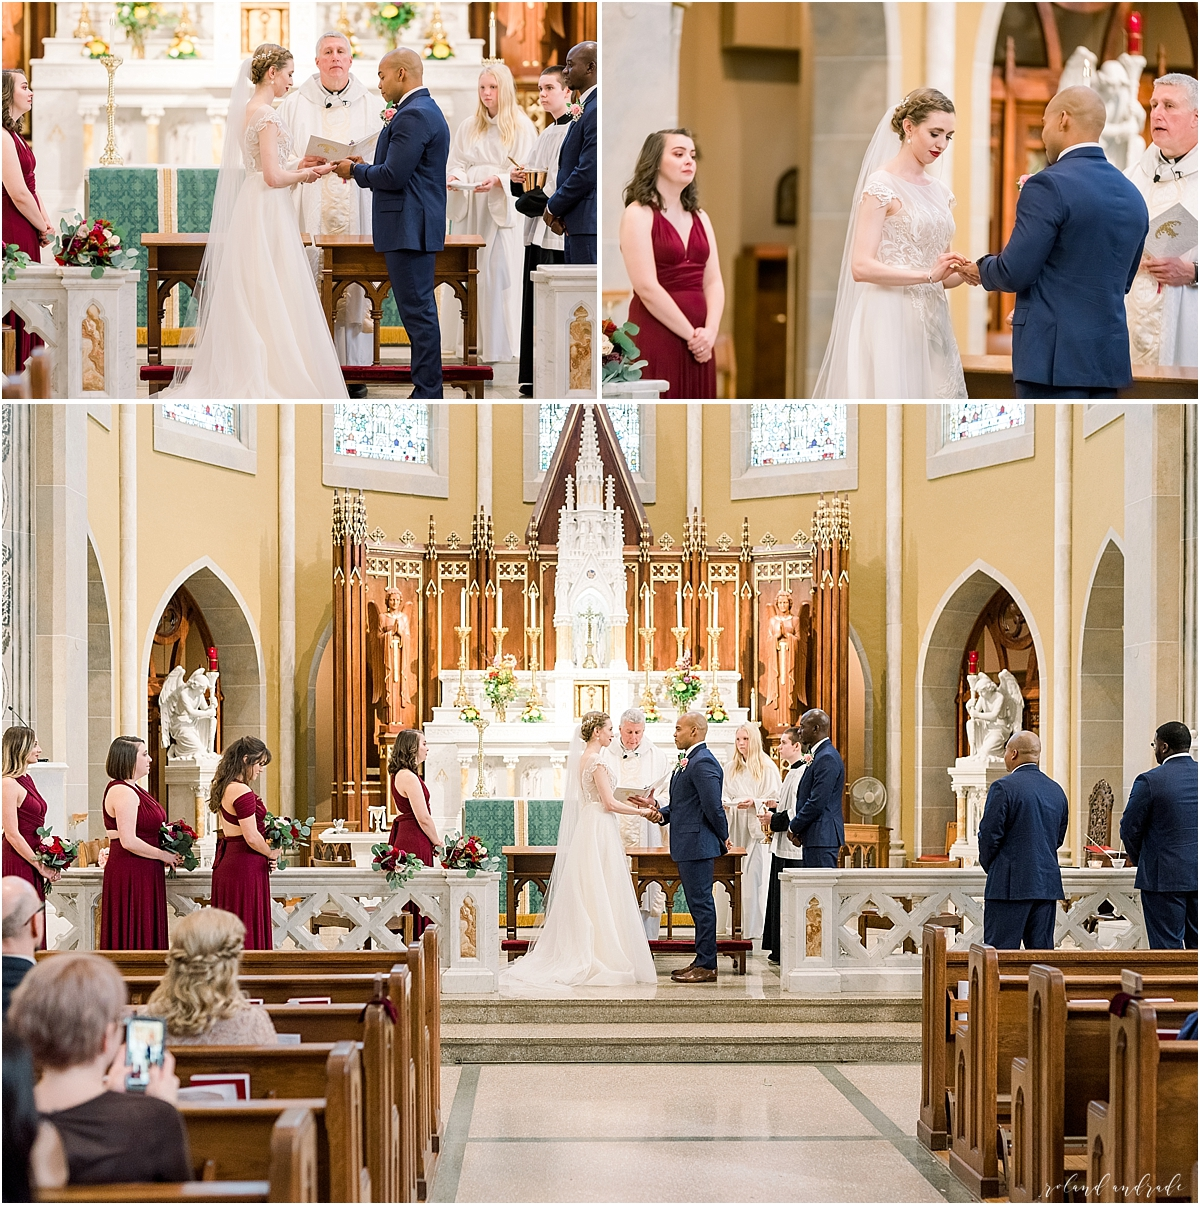 Naperville Country Club Wedding, Chicago Wedding Photographer, Naperville Wedding Photographer, Best Photographer In Aurora, Best Photographer In Chicago_0032.jpg